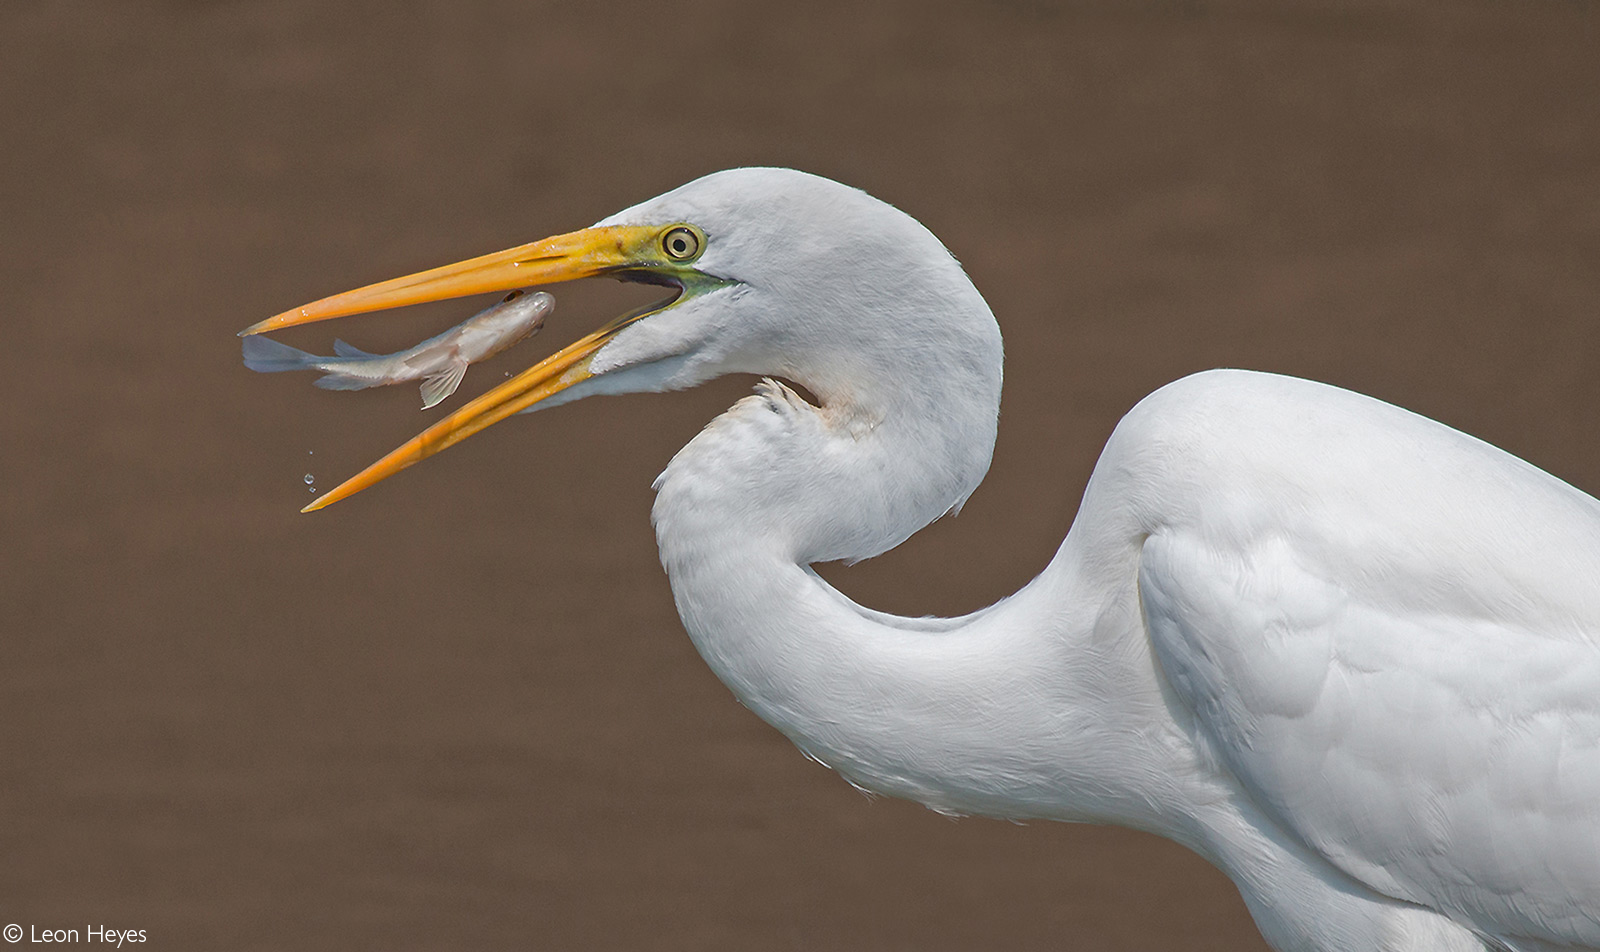 A great white egret catches his lunch at Sunset Dam. Kruger National Park, South Africa © Leon Heyes